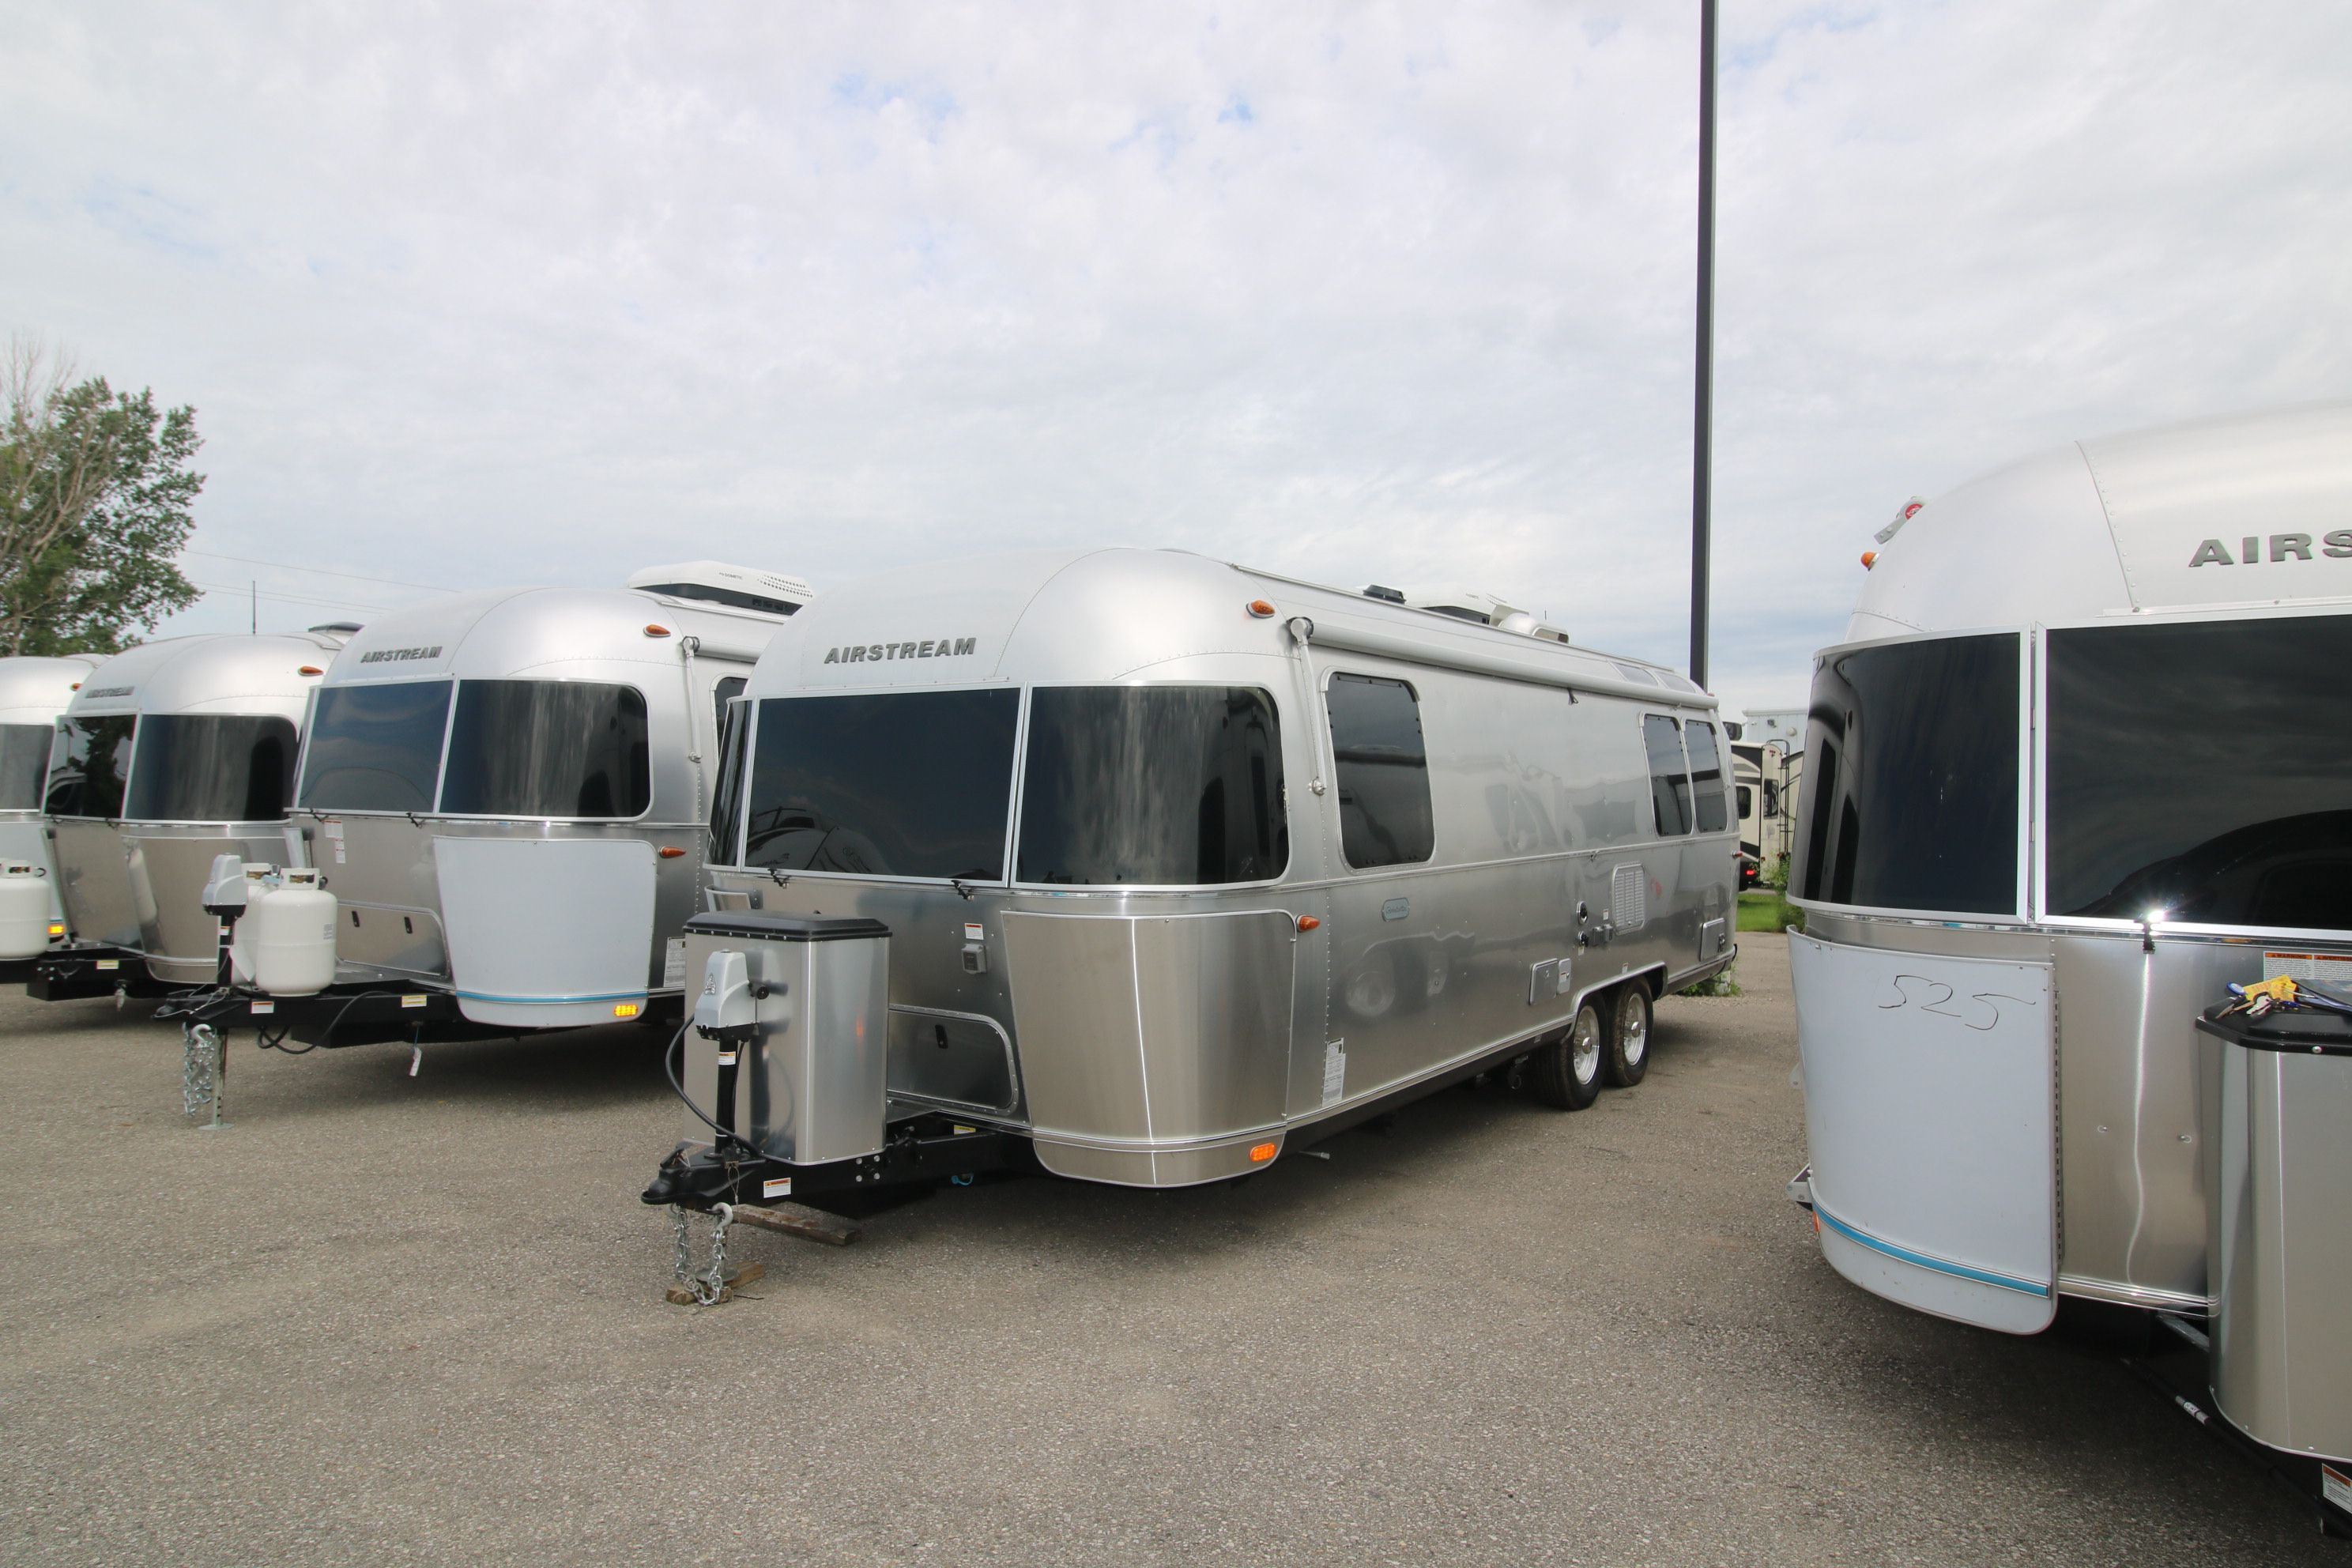 NEW 2019 AIRSTREAM AIRSTREAM 27FB GLOBETROTTER TRAVEL